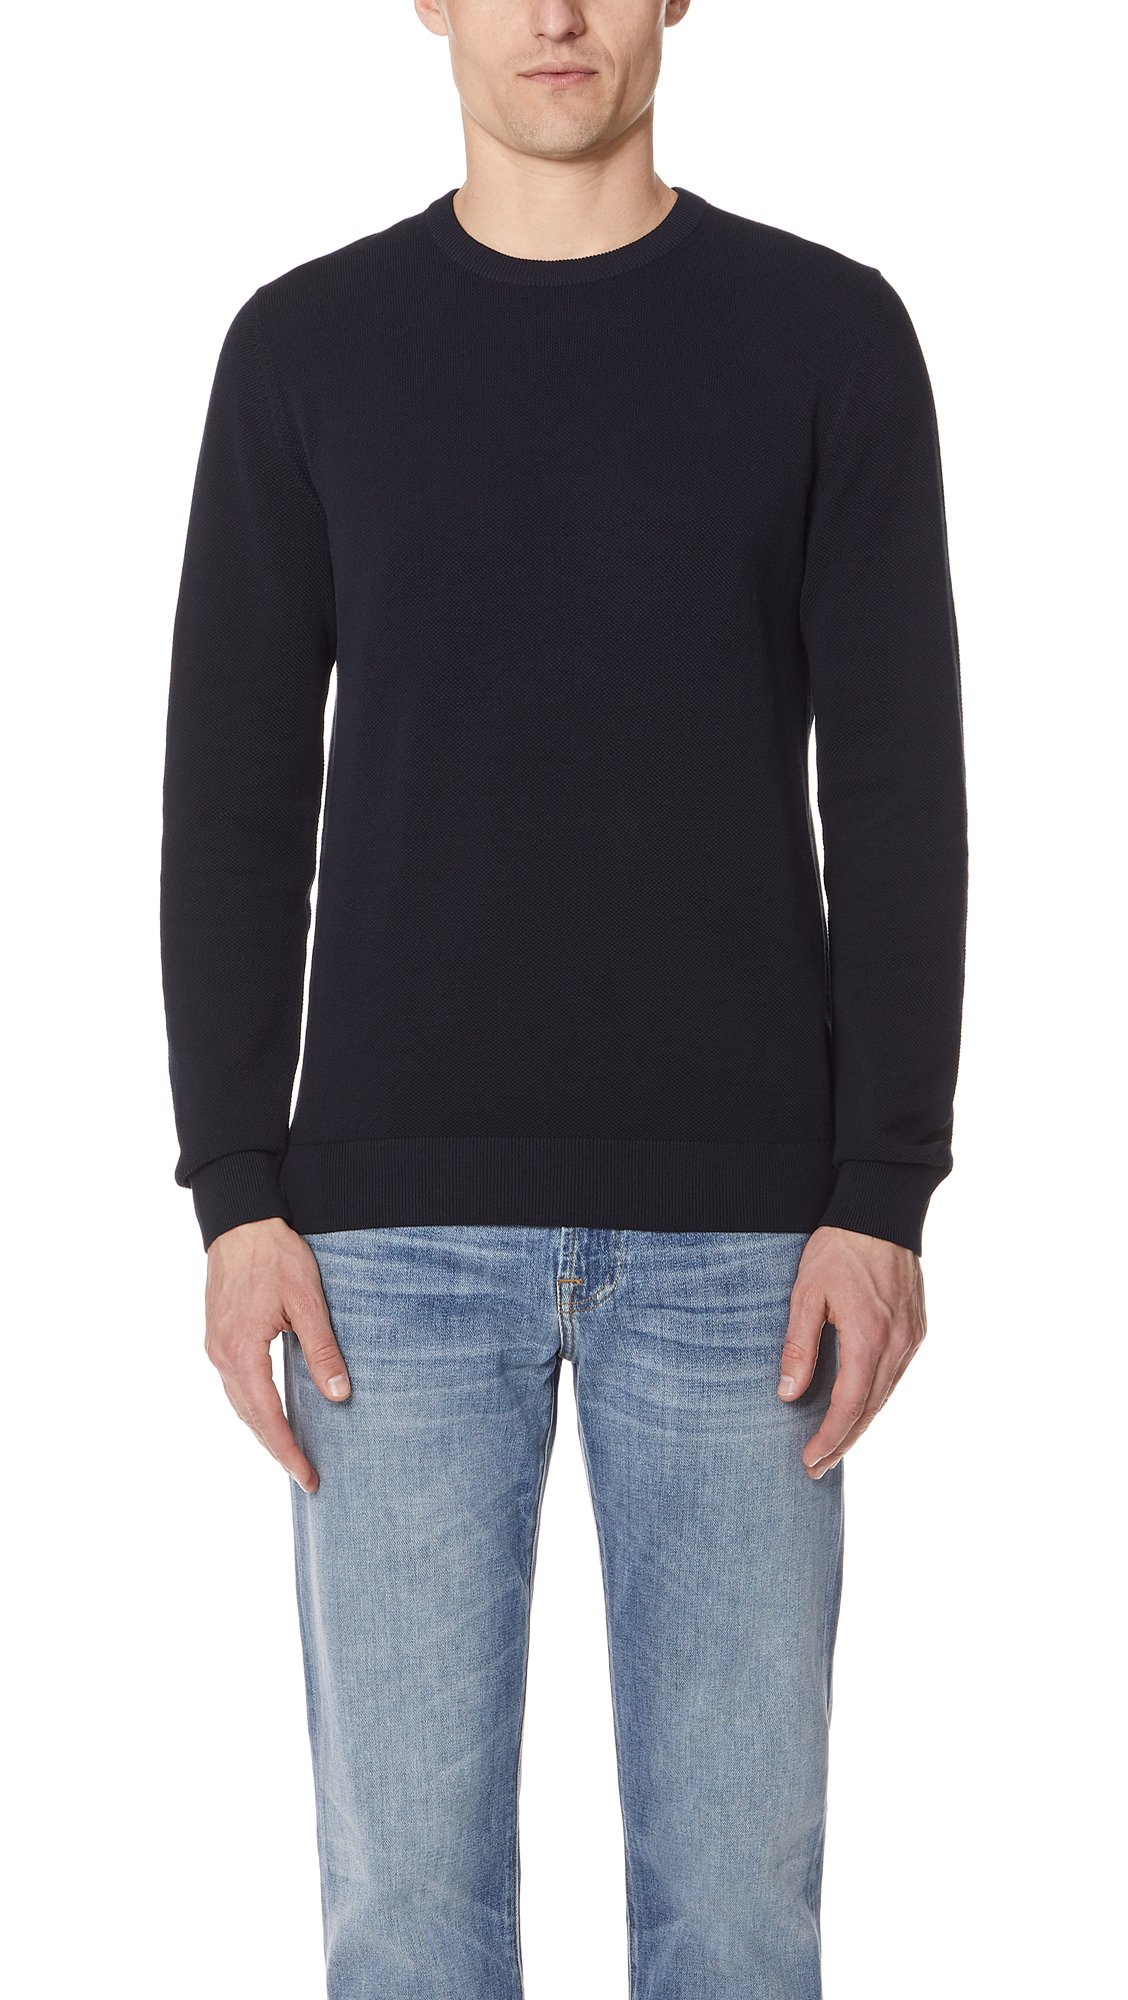 Theory Men's Riland Sweater, Eclipse, X-Small